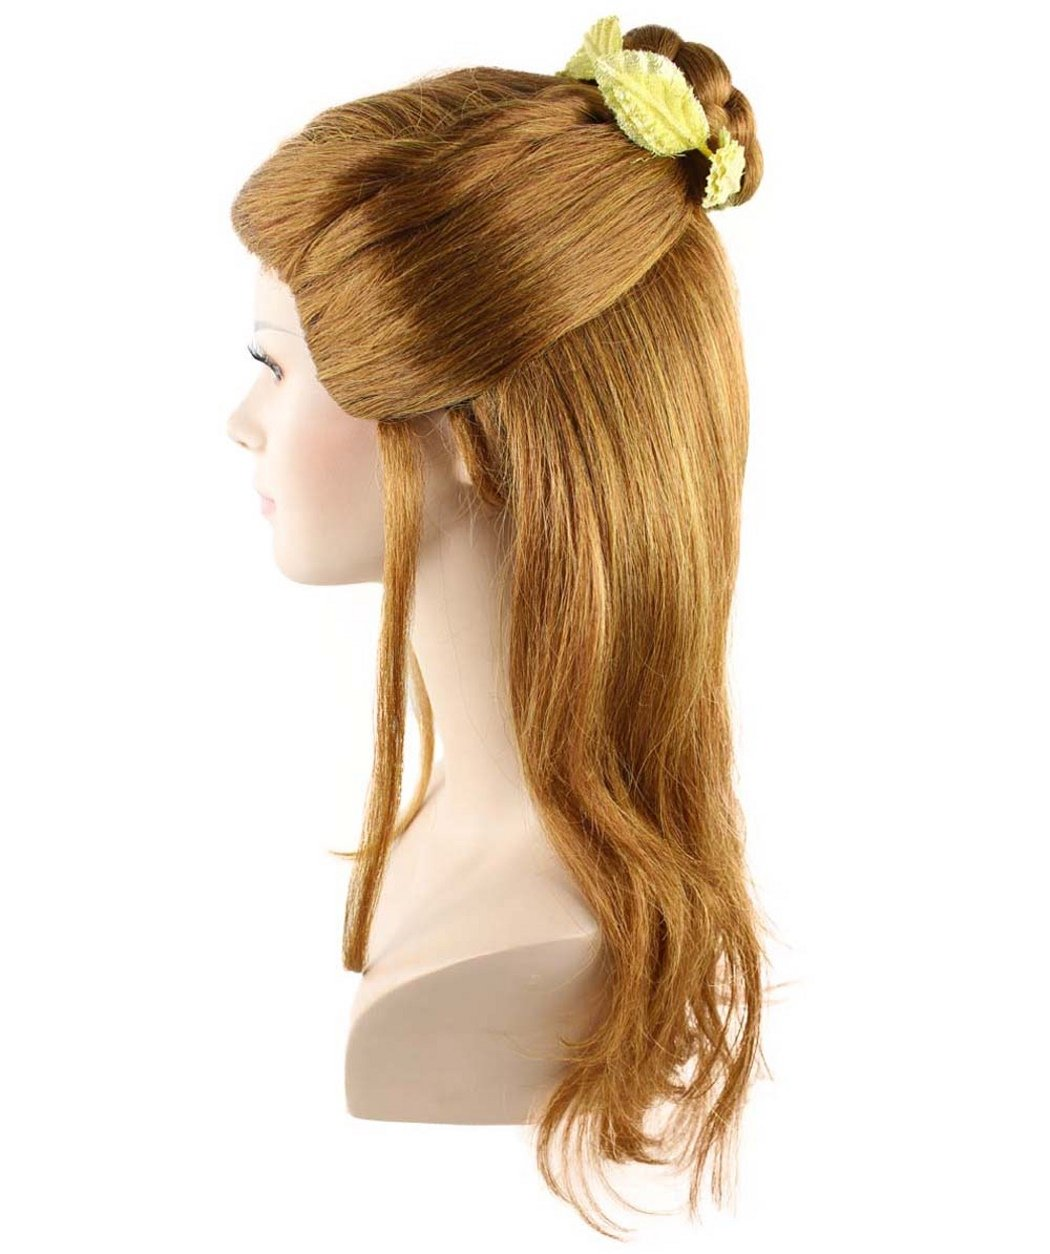 Cece Womens Belle Long Hair Curly Wigs Bun with Thin Side Tendrils for Cosplay Party Costume with Wig Cap, Brunette